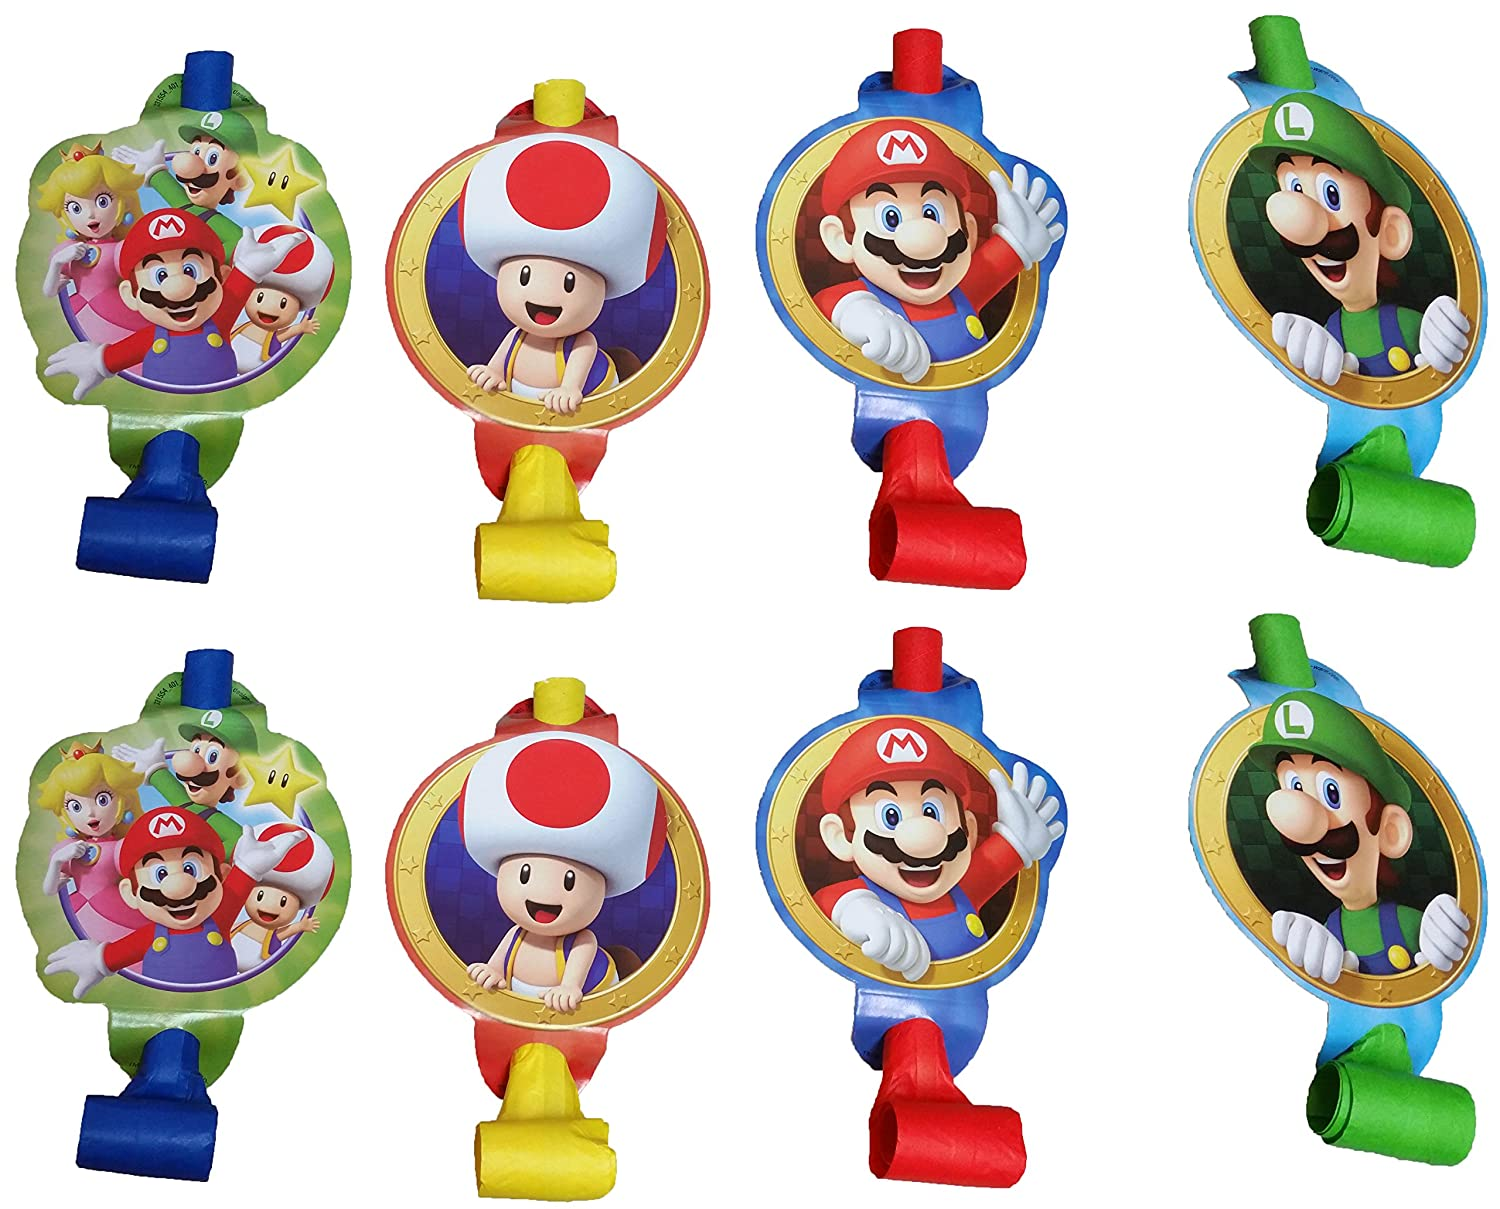 Amazon.com: Super Mario Bros Party Blowouts and Paper Hats for 8 ...